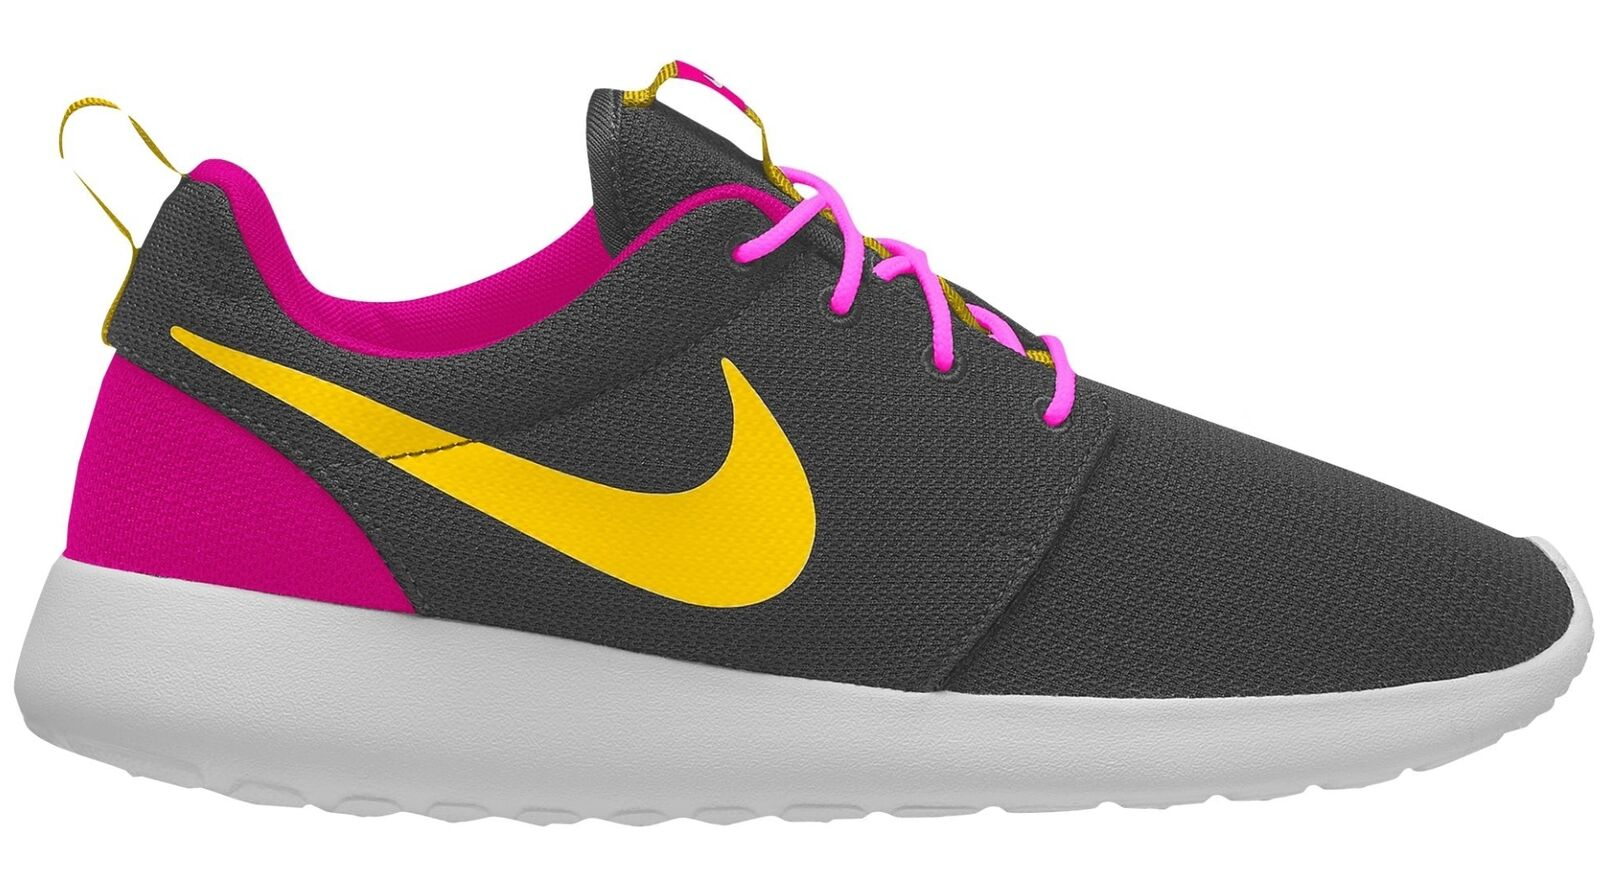 Nike Roshe One Mens 511881-035 Anthracite Magenta Yellow Running Shoes Size 11.5